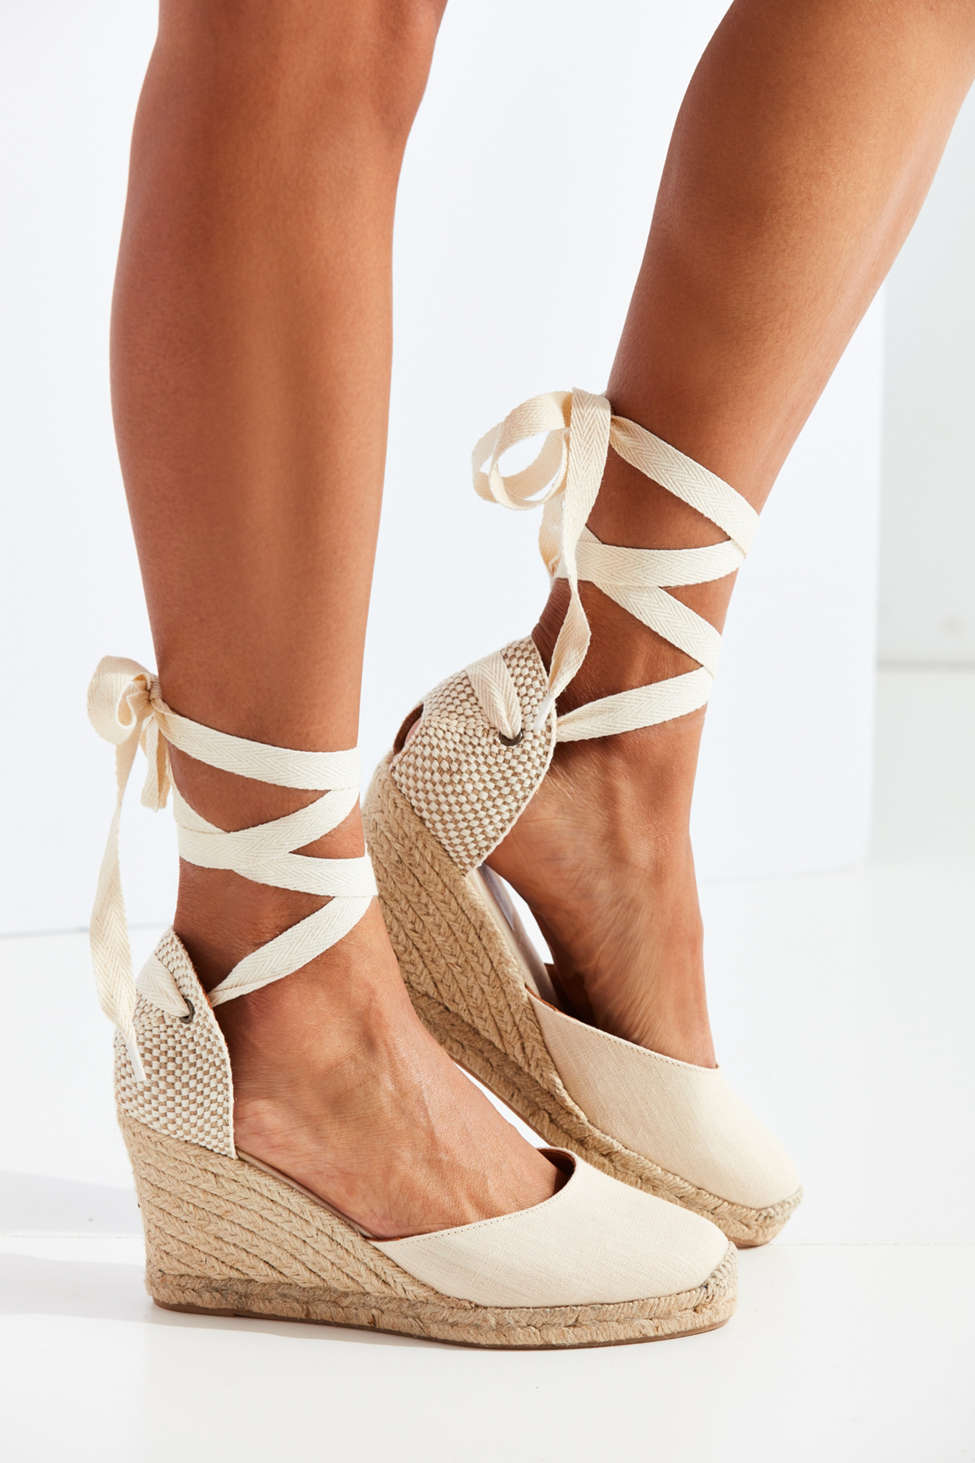 Soludos Linen Espadrille Tall Wedge Sandal Urban Outfitters